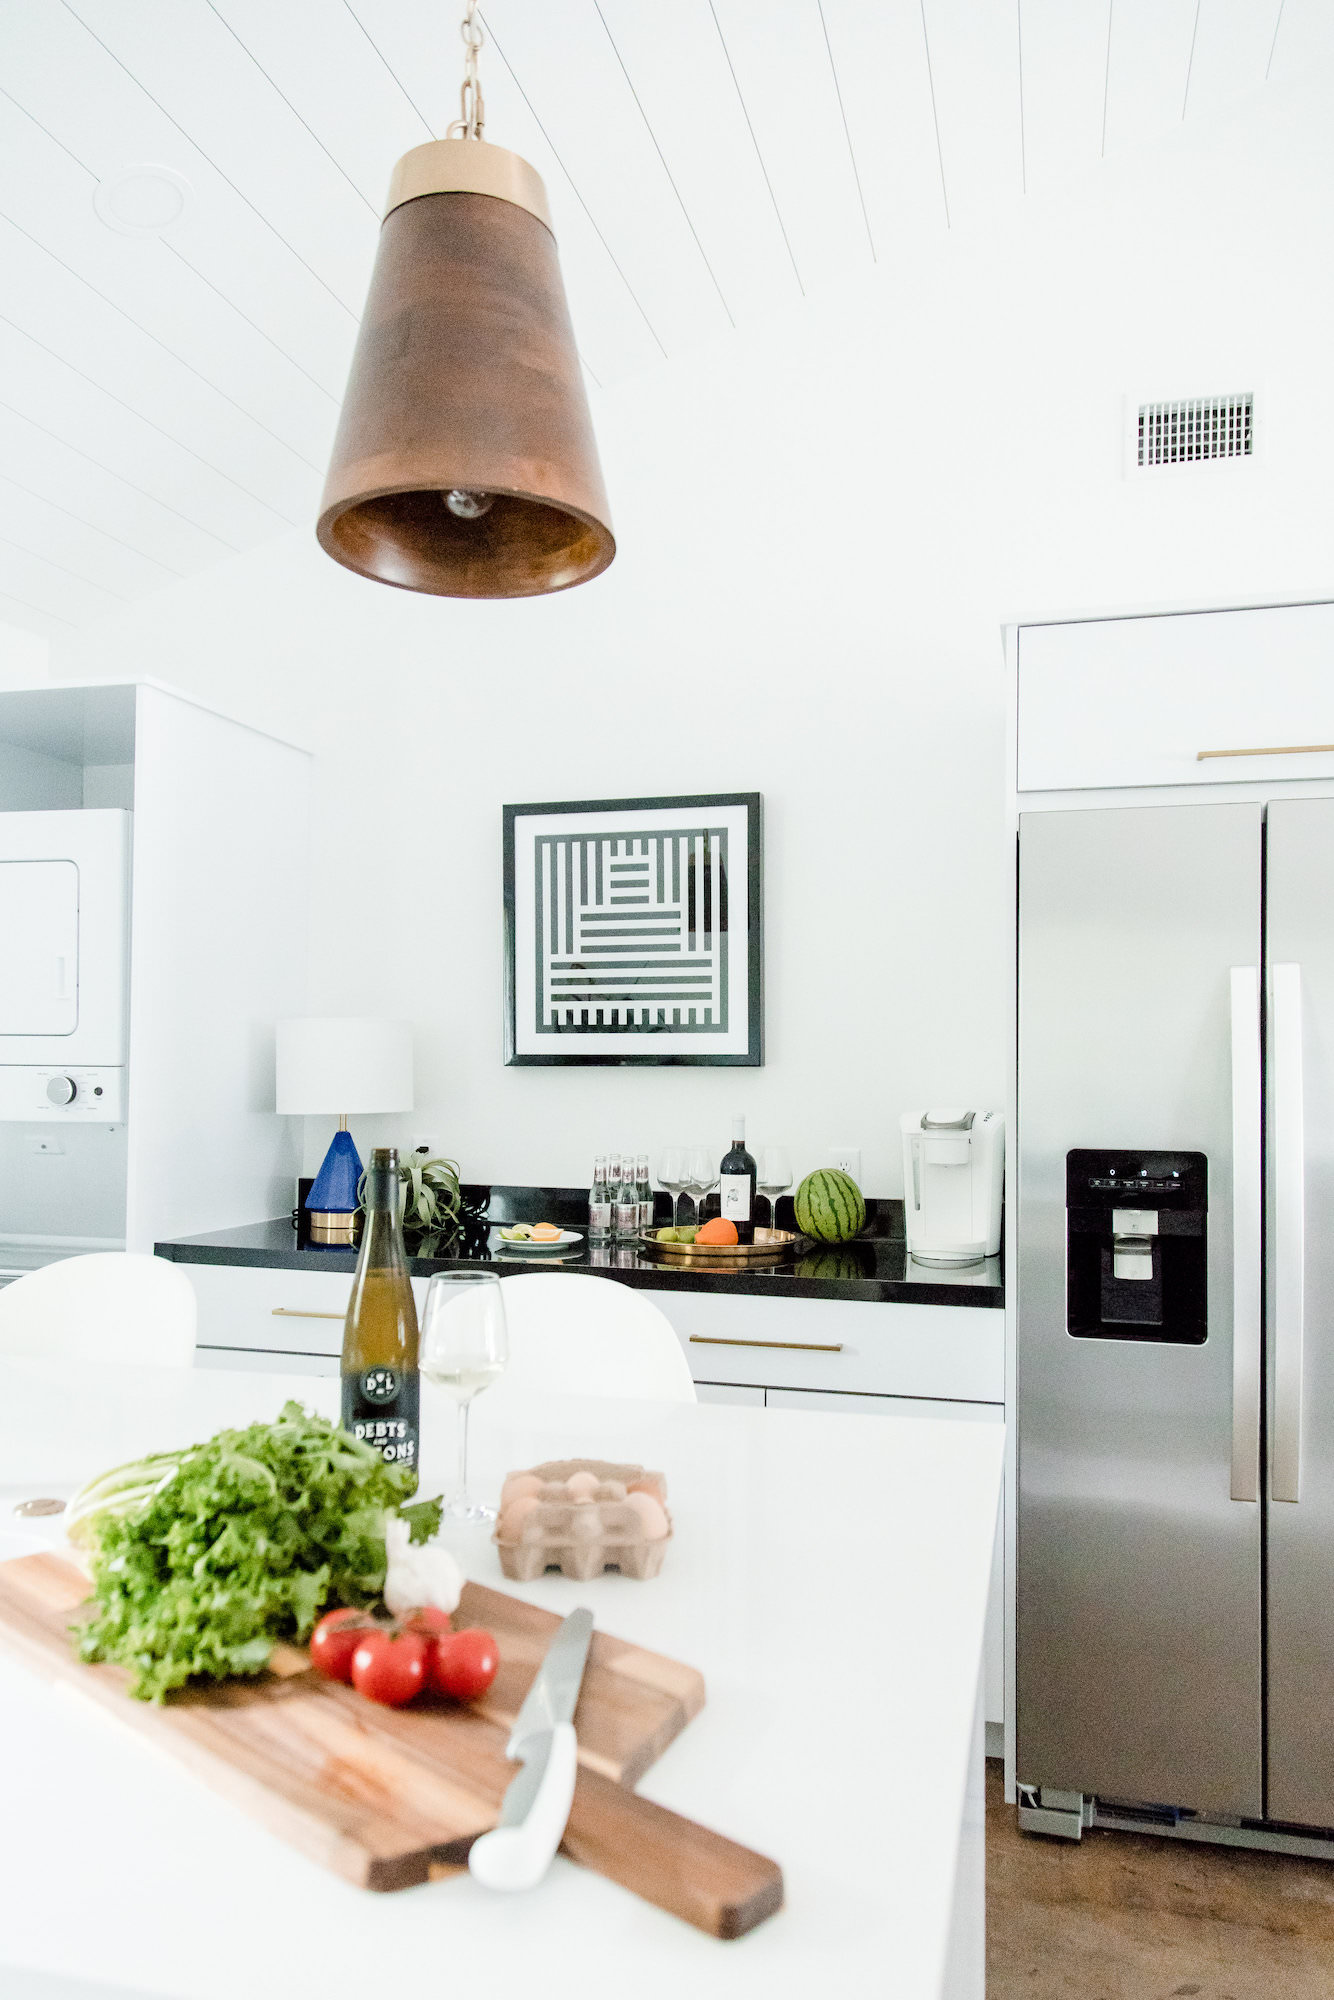 mid-century-modern-kitchen-vacation-rental-food-cutting-board-web-resolution.jpg